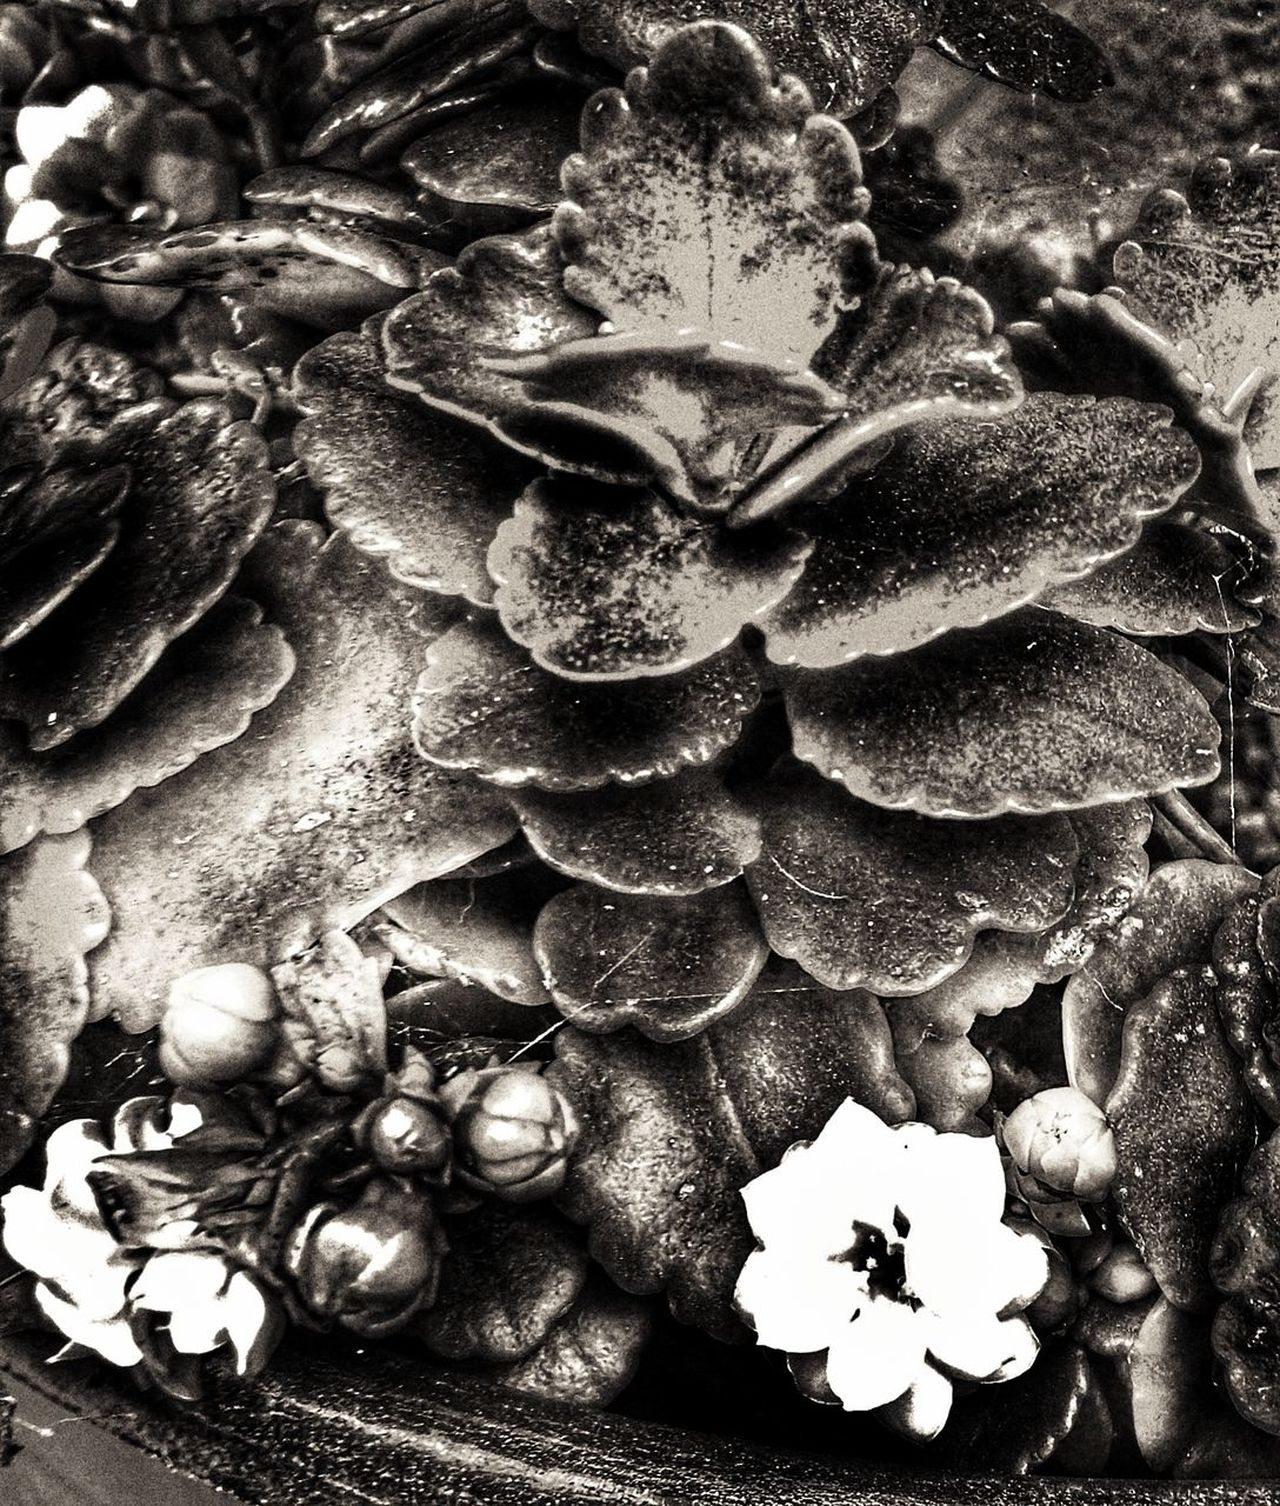 Plants in black and white collection special effects collection No People Close-up Day Garden Photography Outdoors Collection Of Special Effects Photographs Plant Special Effects Beauty In Nature Fragility Nature Quiet Garden Black&white Black And White Collection